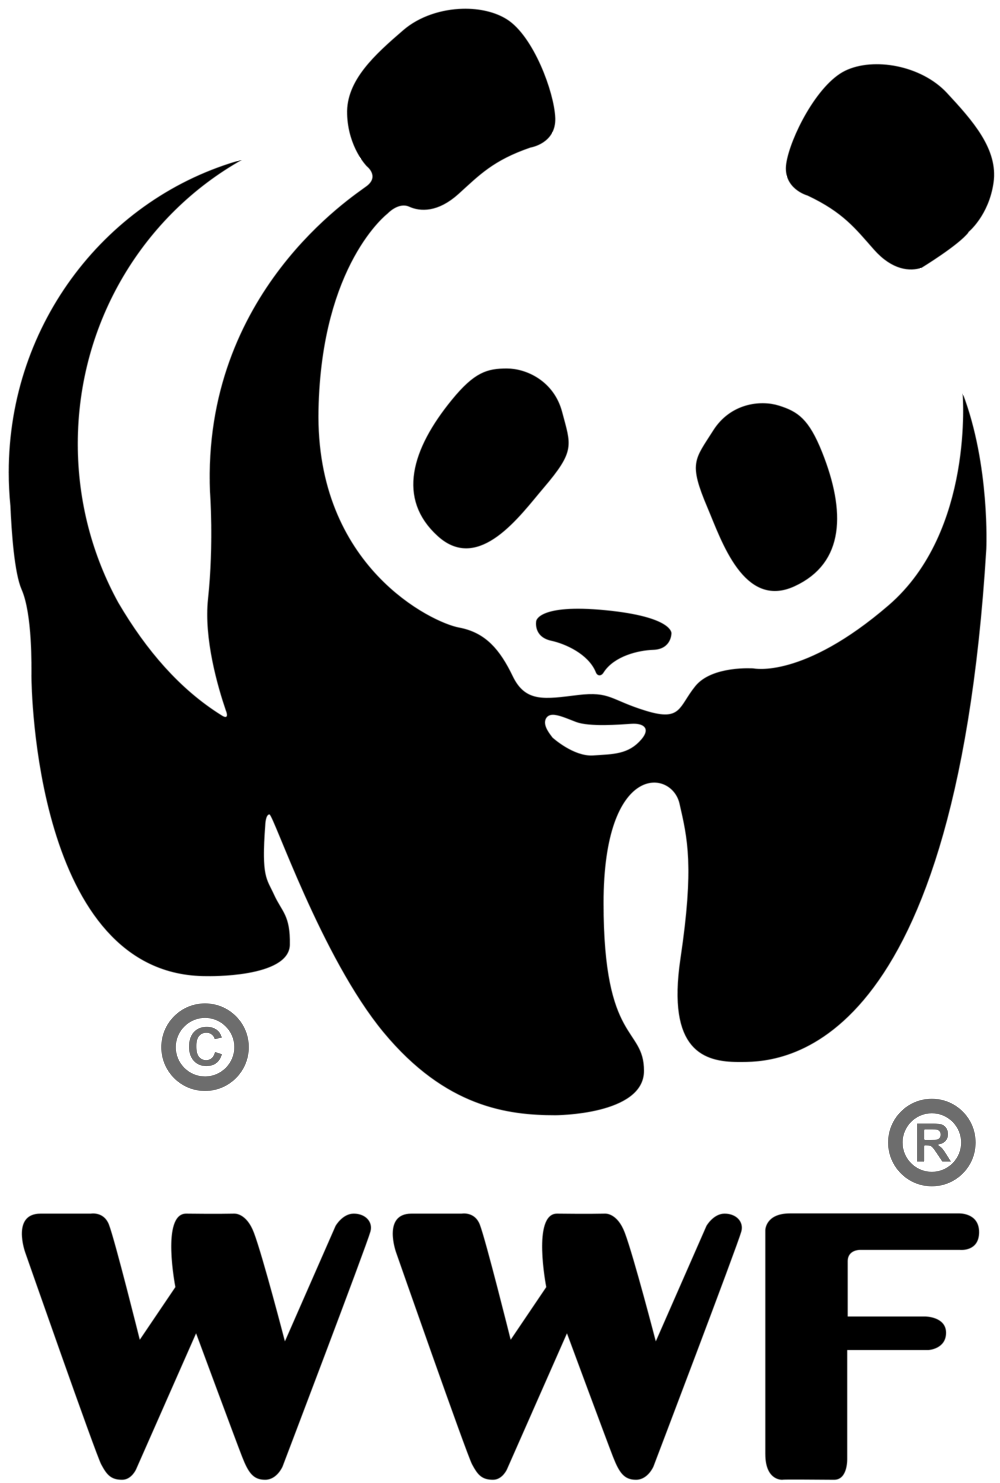 WWF logo transparent background.png